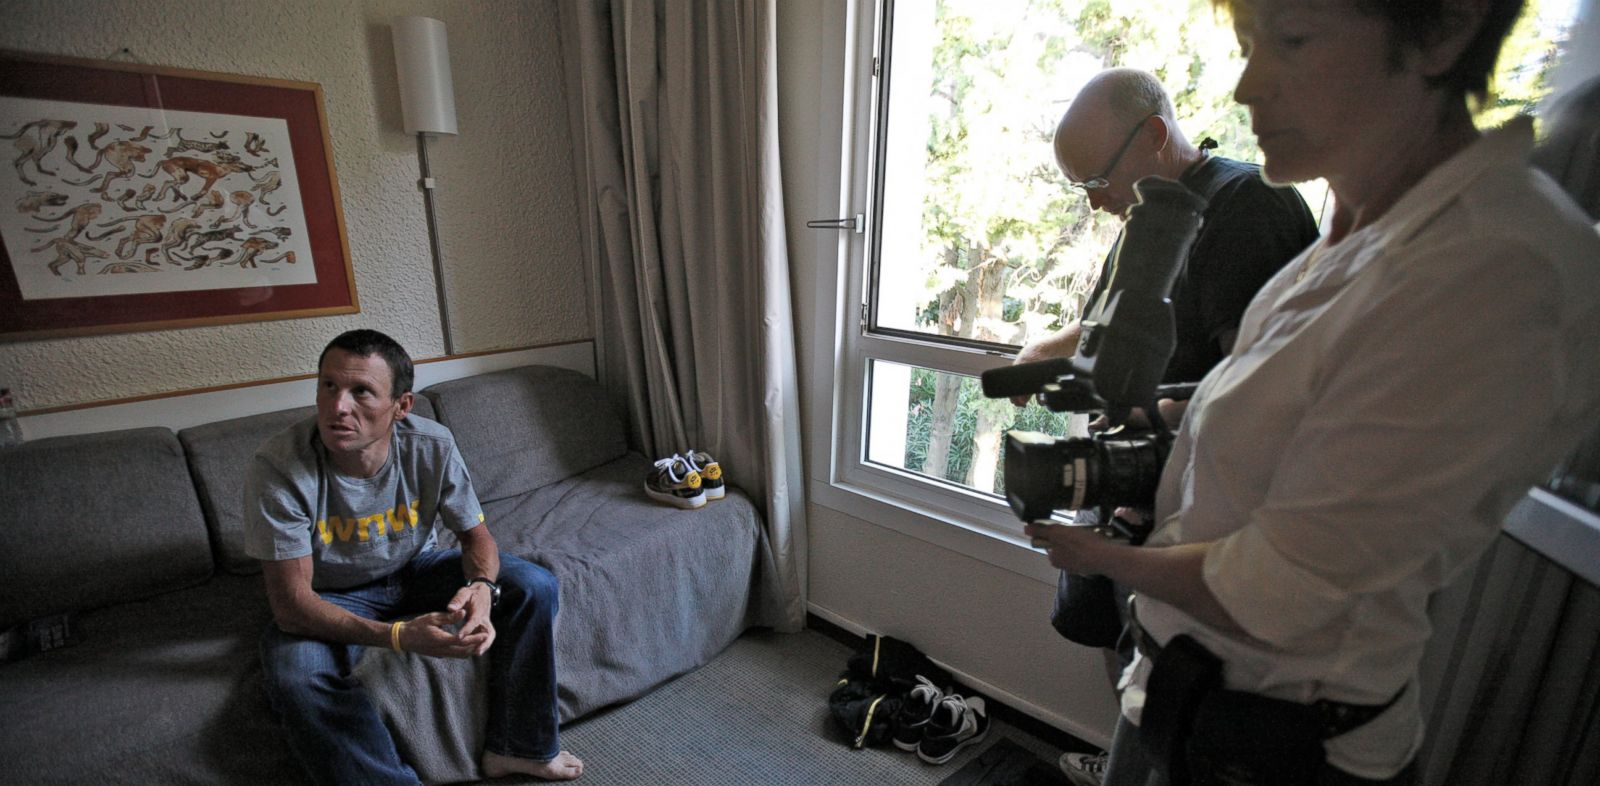 PHOTO: Academy Award-winning director Alex Gibney had remarkable access to Lance Armstrong before and after the cycling champion revealed his doping past.